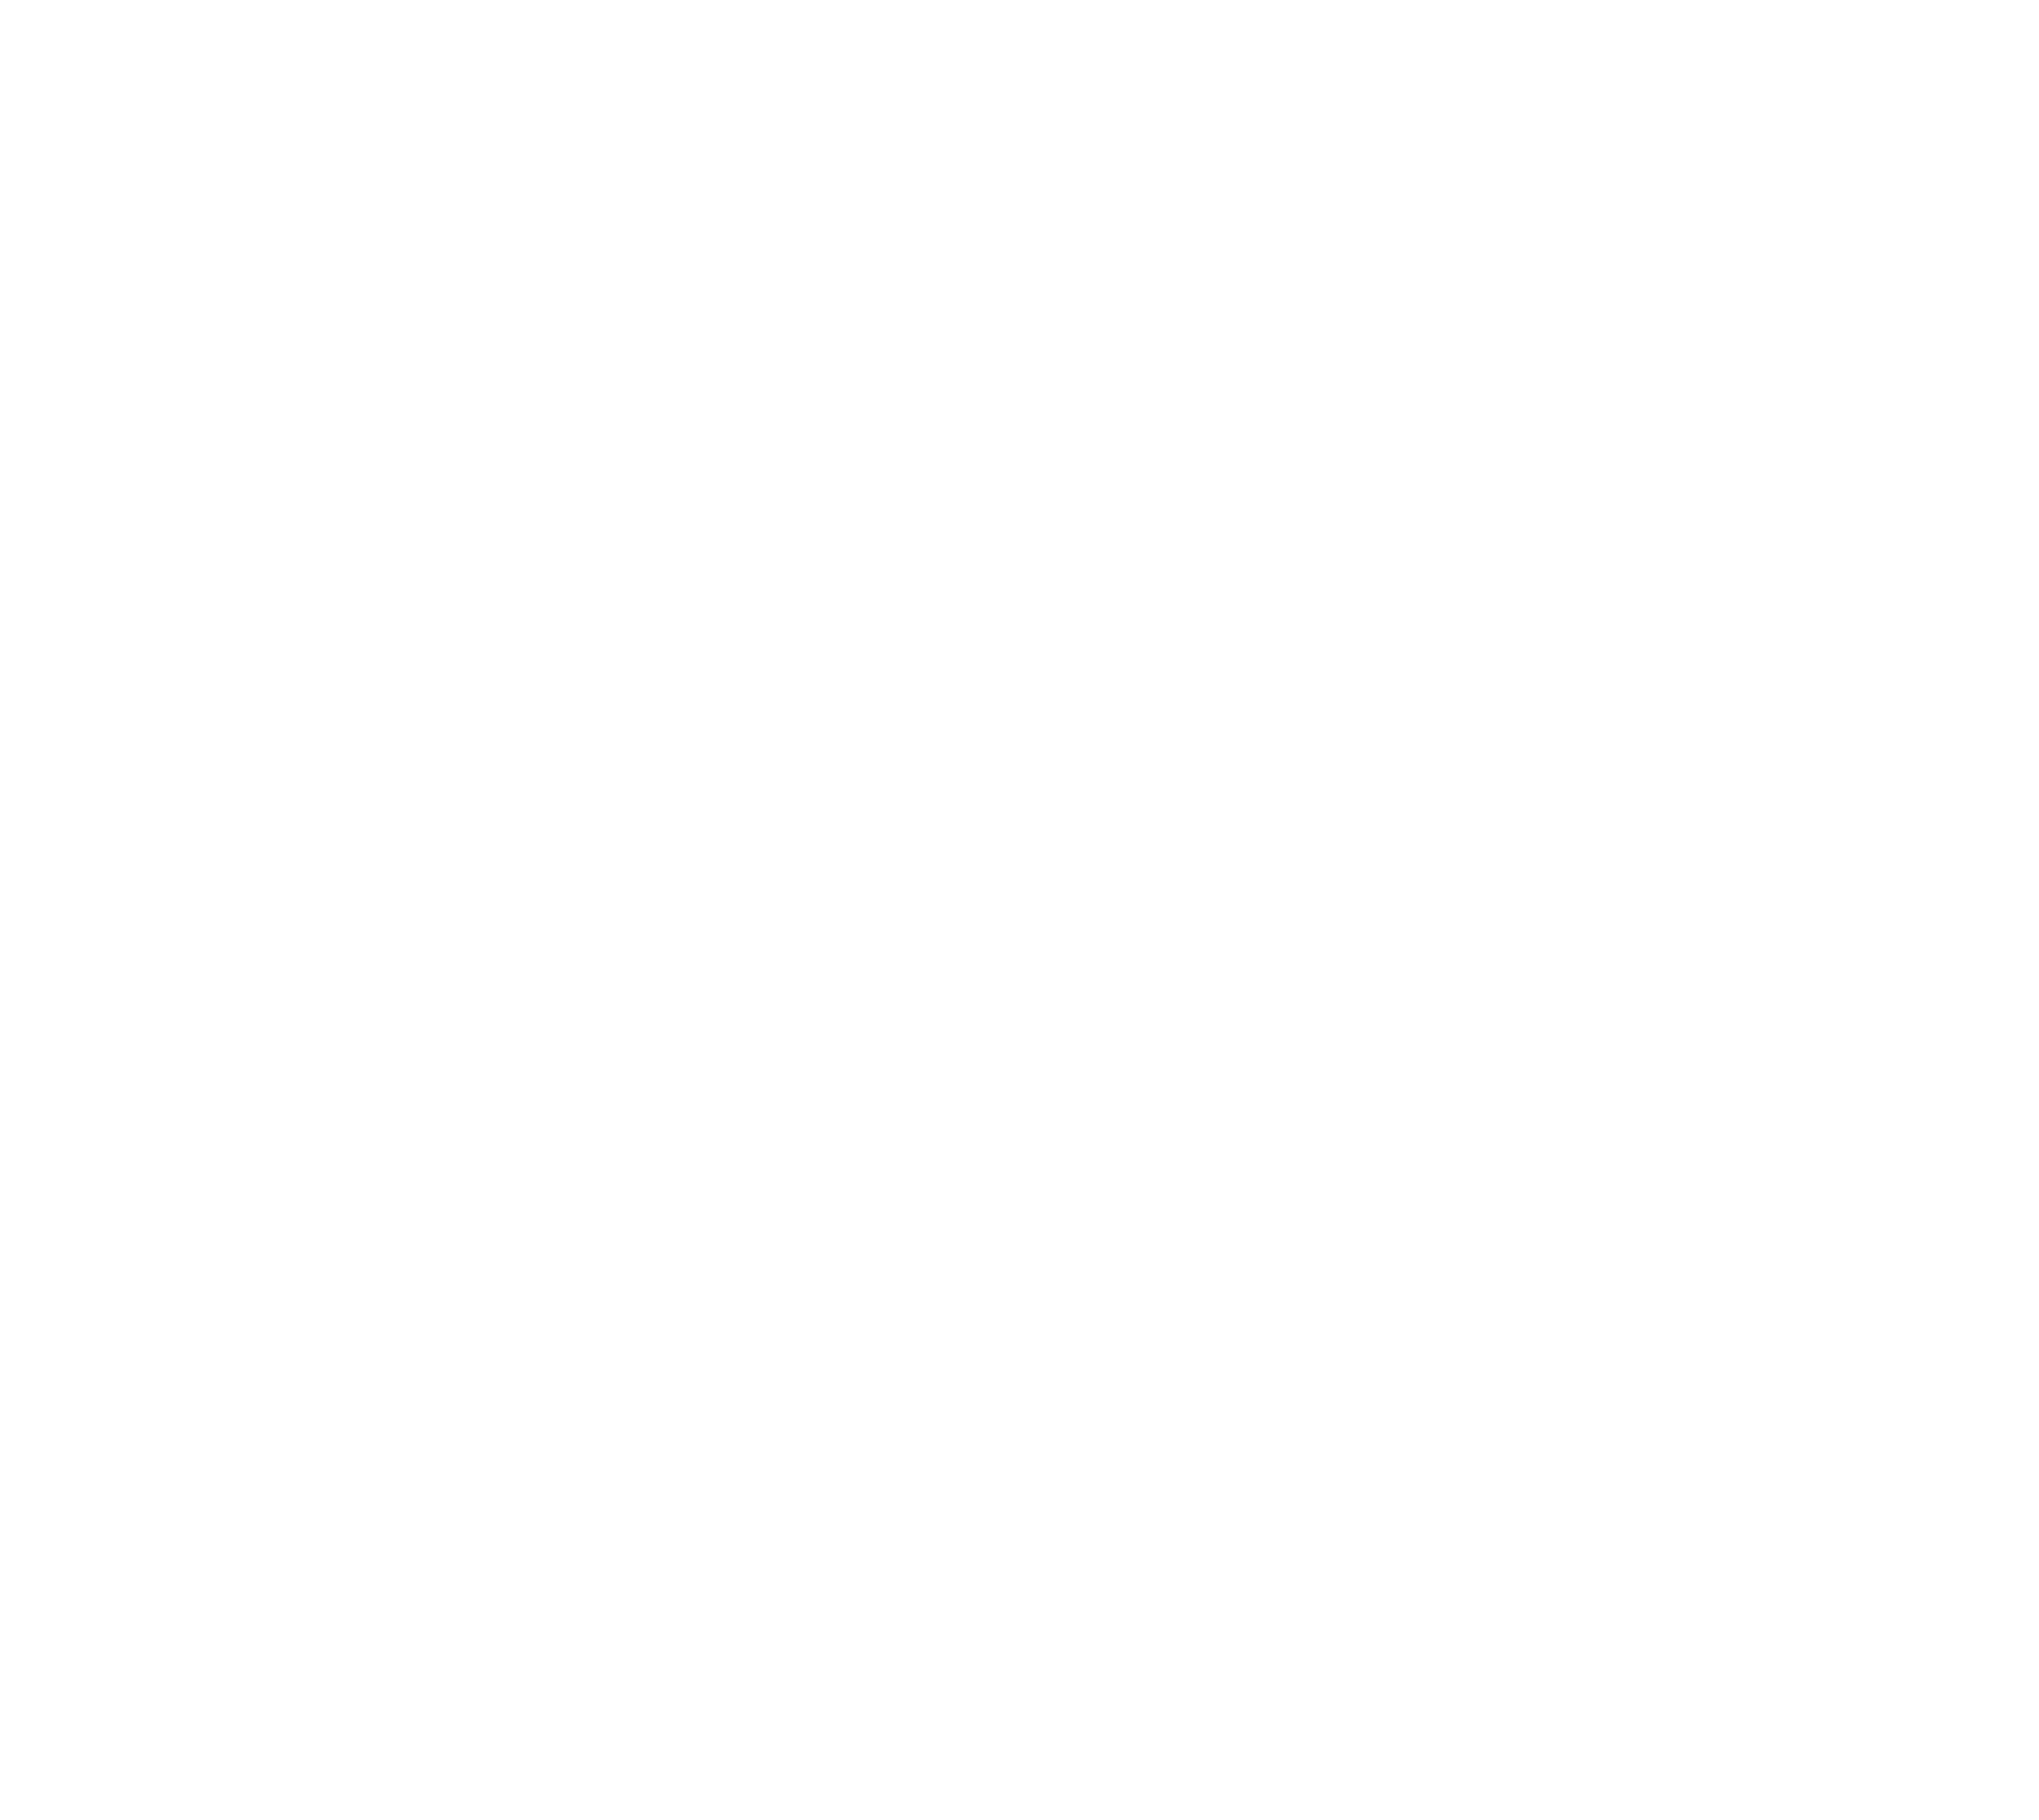 Good Photography Co.